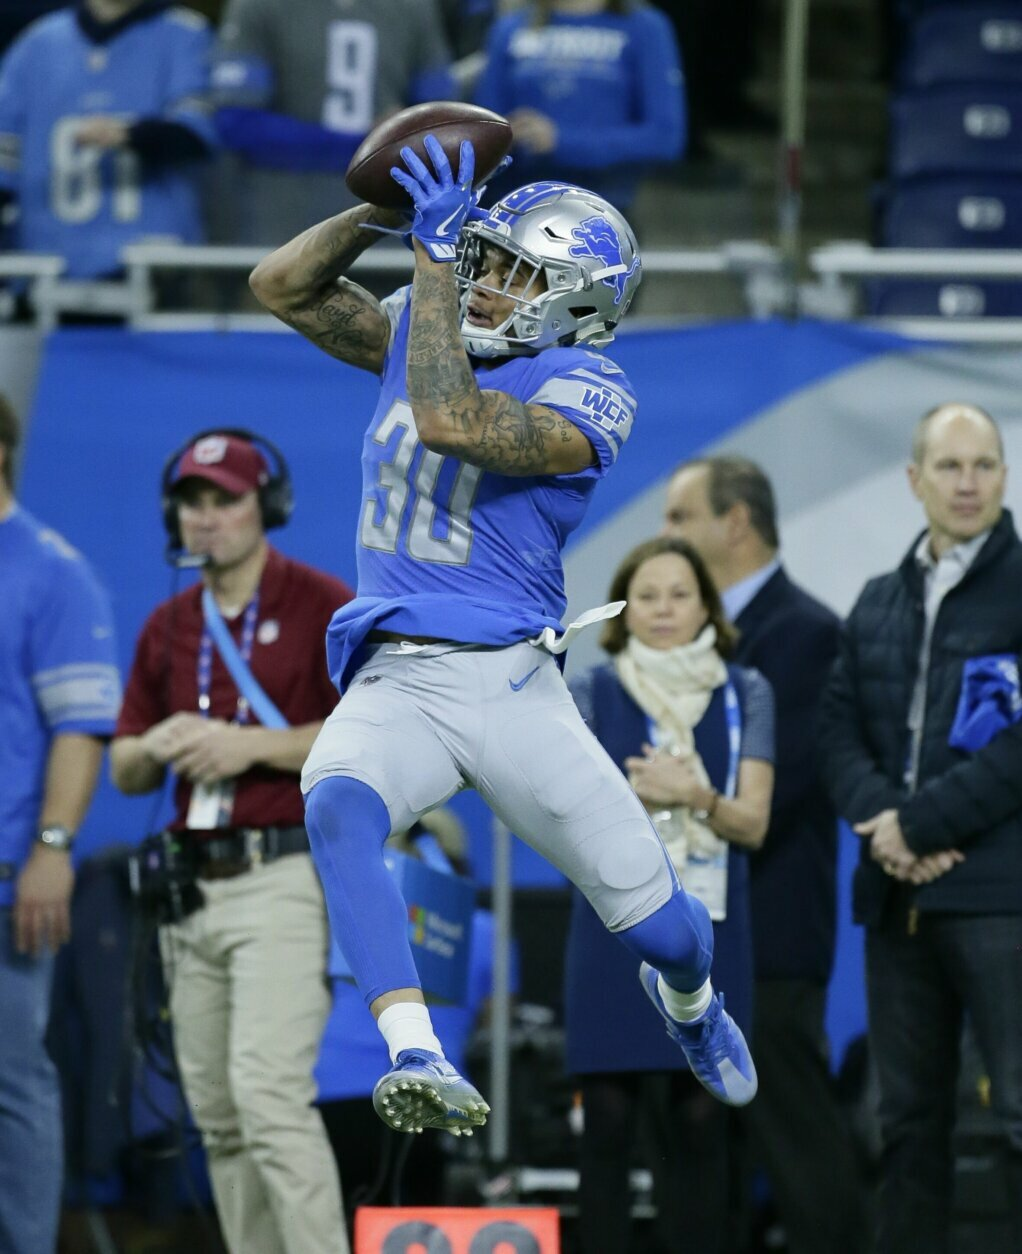 <p>D.C.-native Teez Tabor was signed to the 49ers&#8217; practice squad in October. The Friendship Collegiate Academy graduate and 2017 second-round pick played 22 games in two seasons with the Detroit Lions before being released in September.</p>